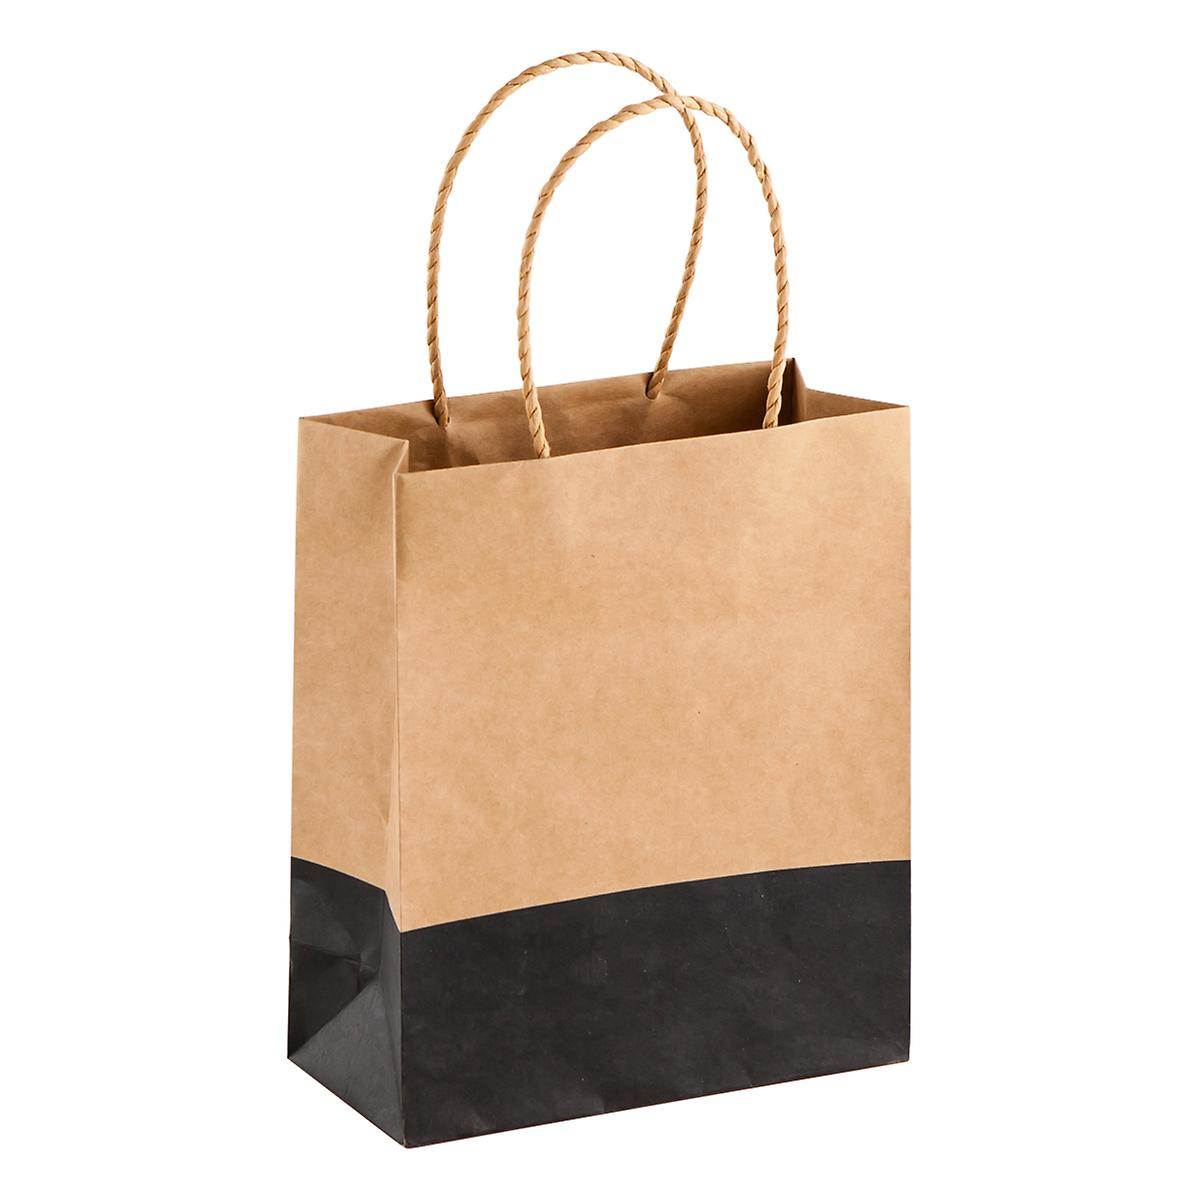 Medium Nightshade Gift Tote